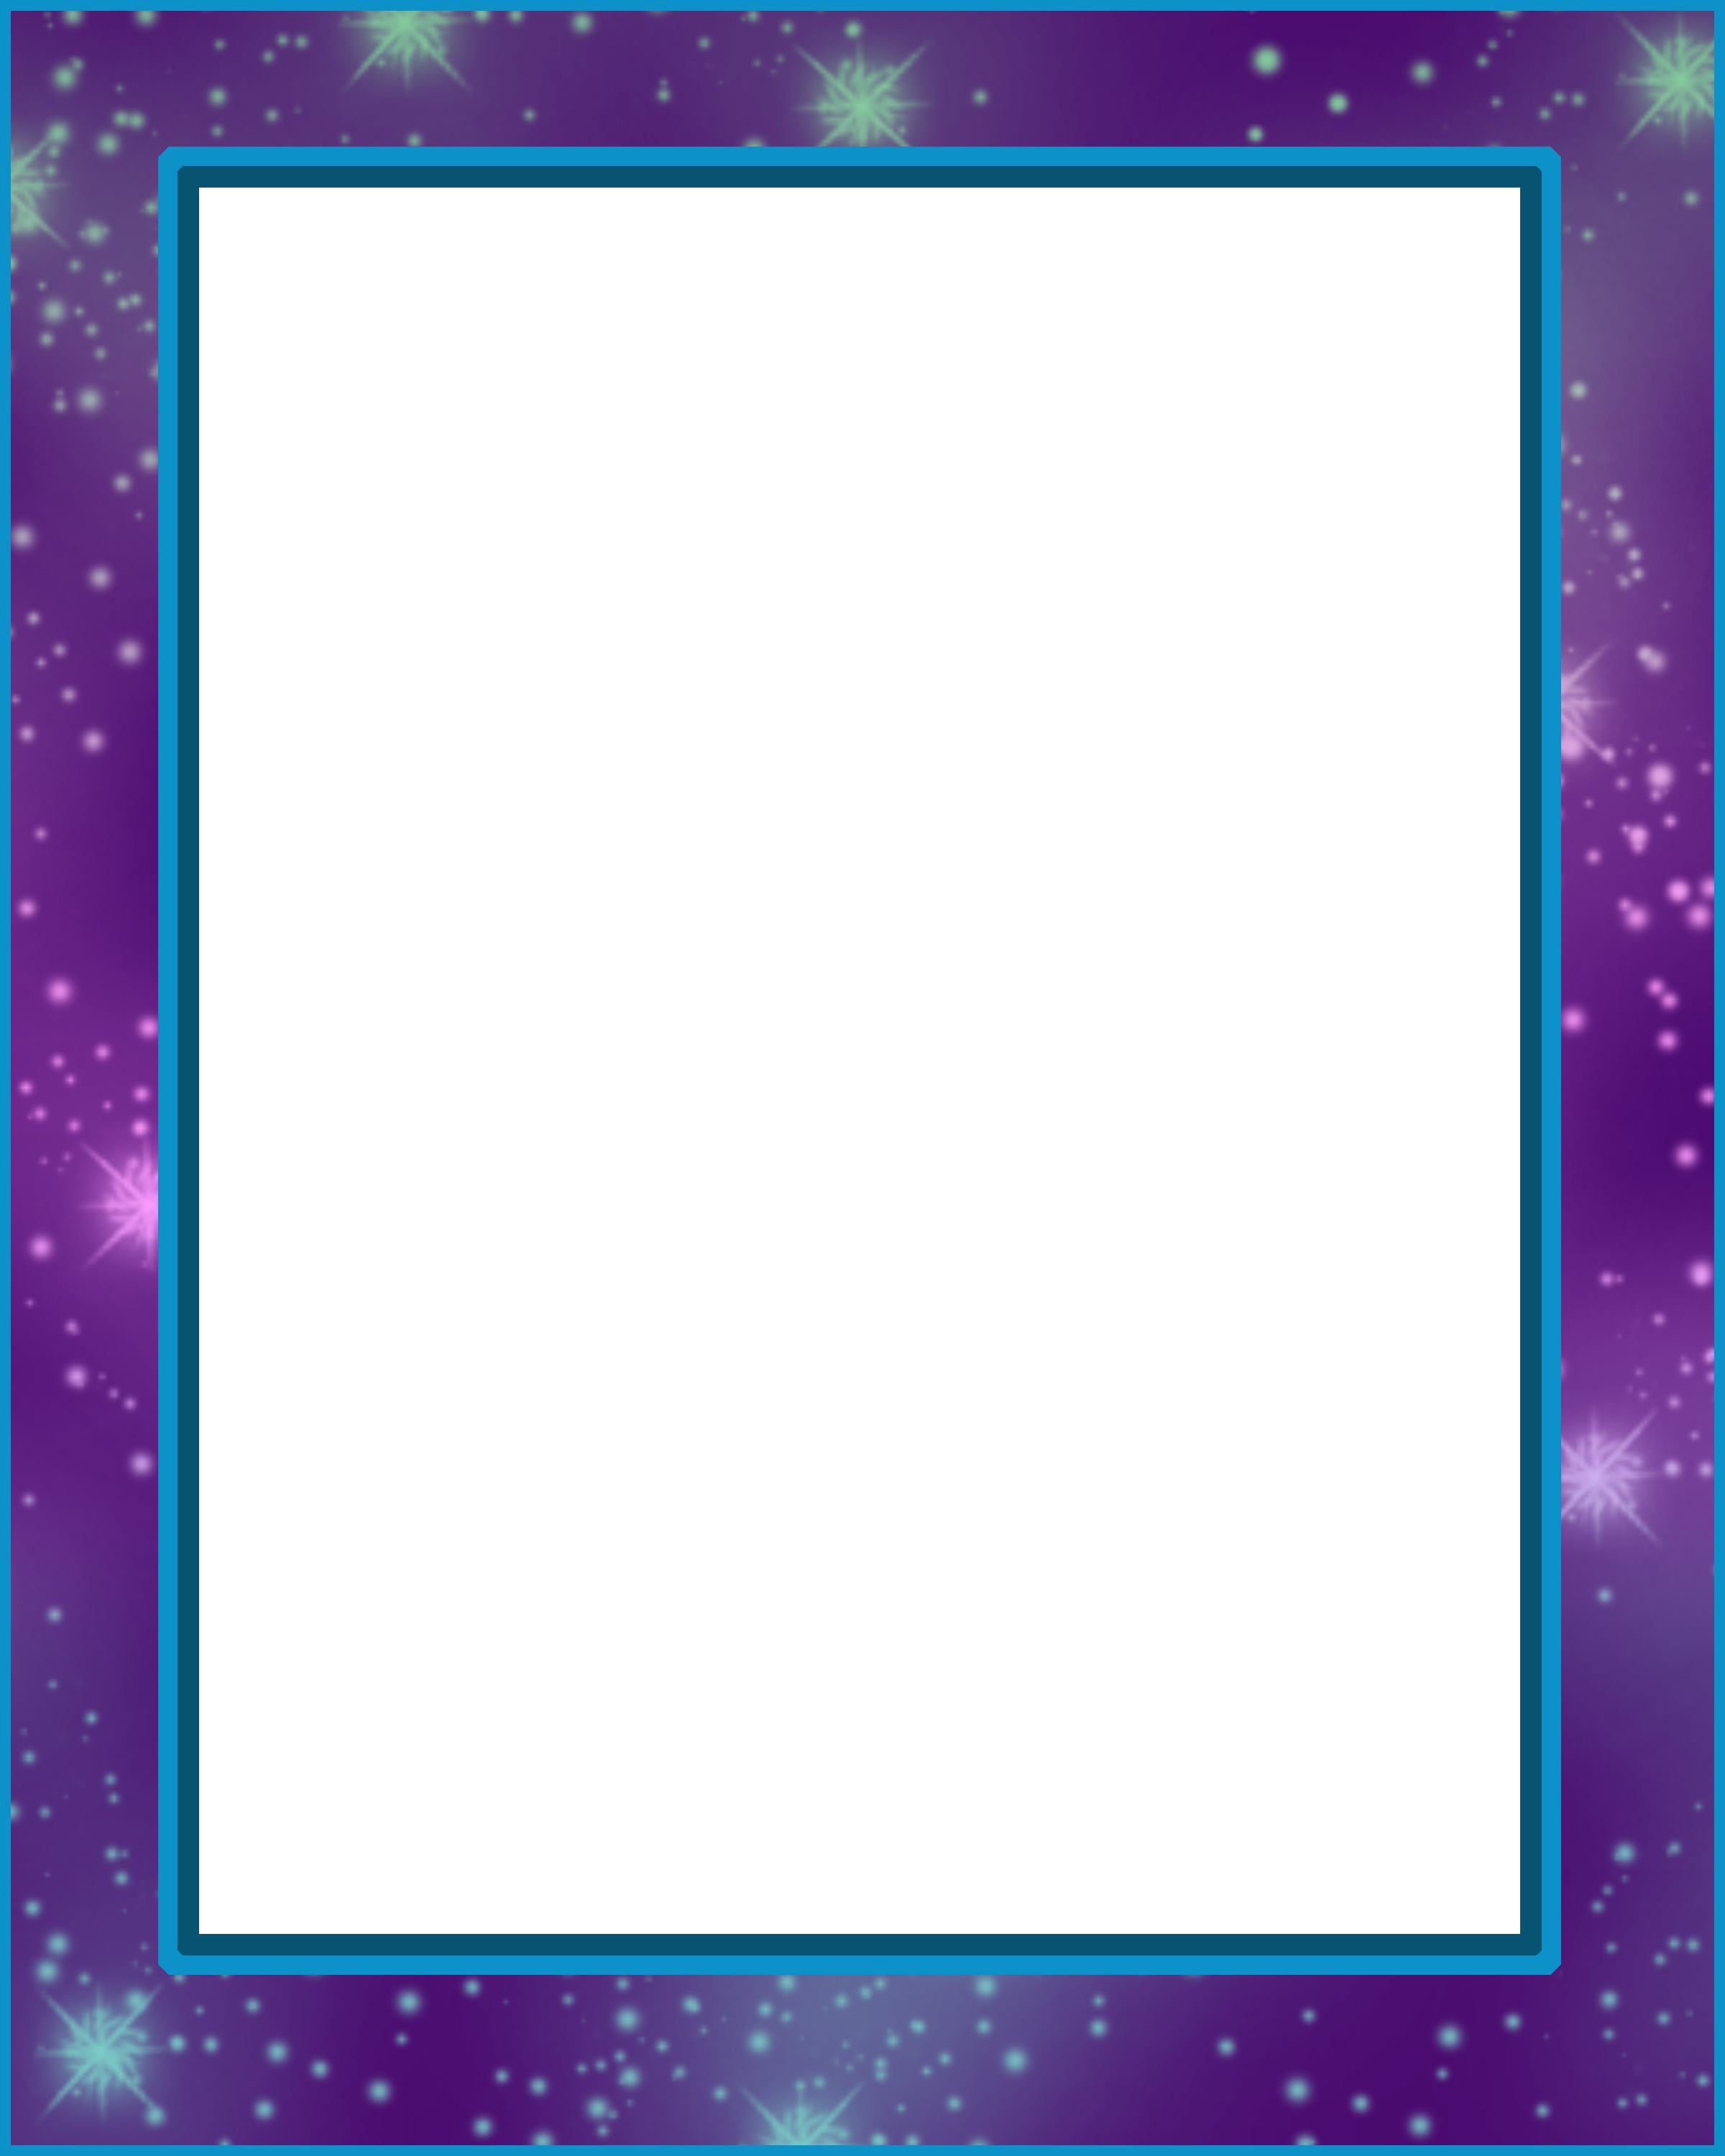 Frame picture png. Download x mat purple